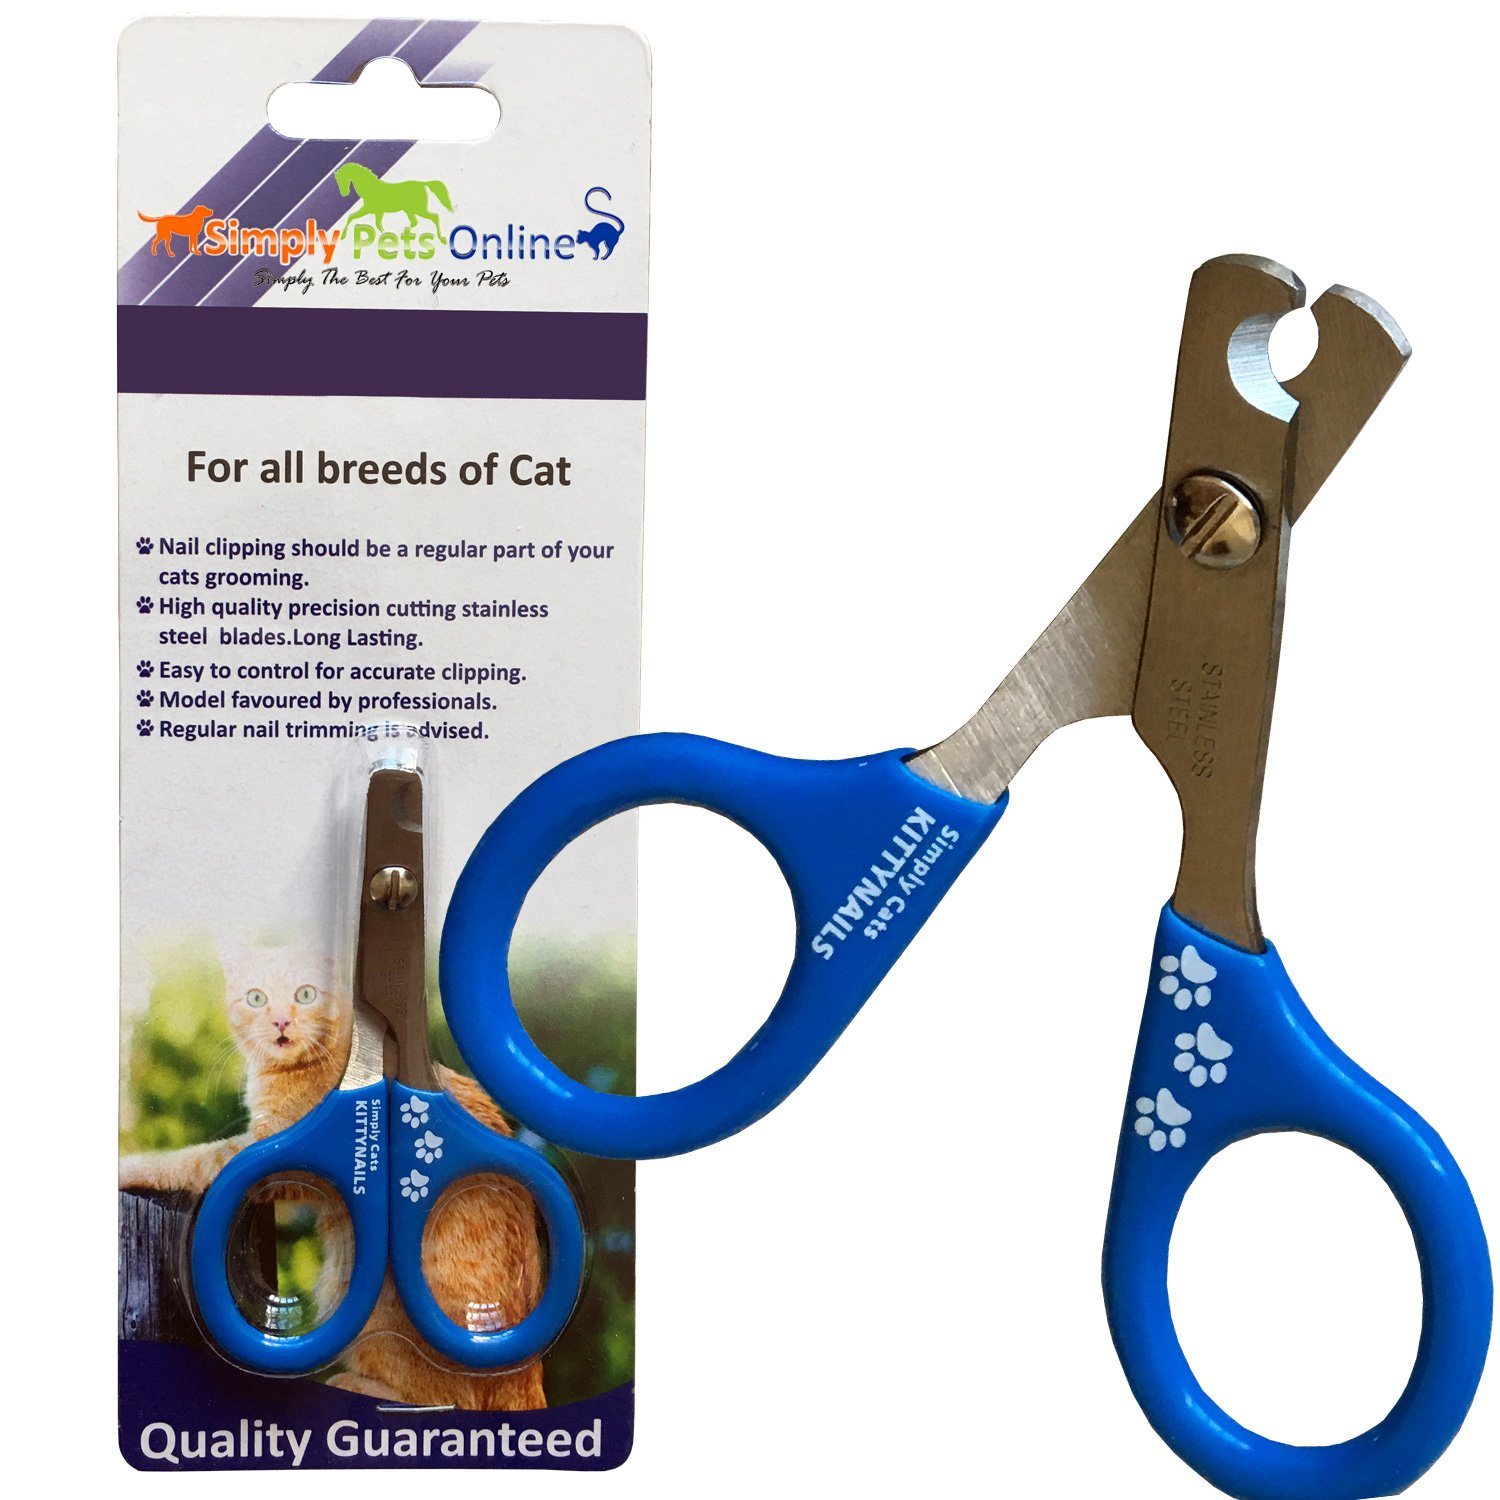 Amazon.com: Cat Nail Clippers by KittyNails - Professional Cat ...